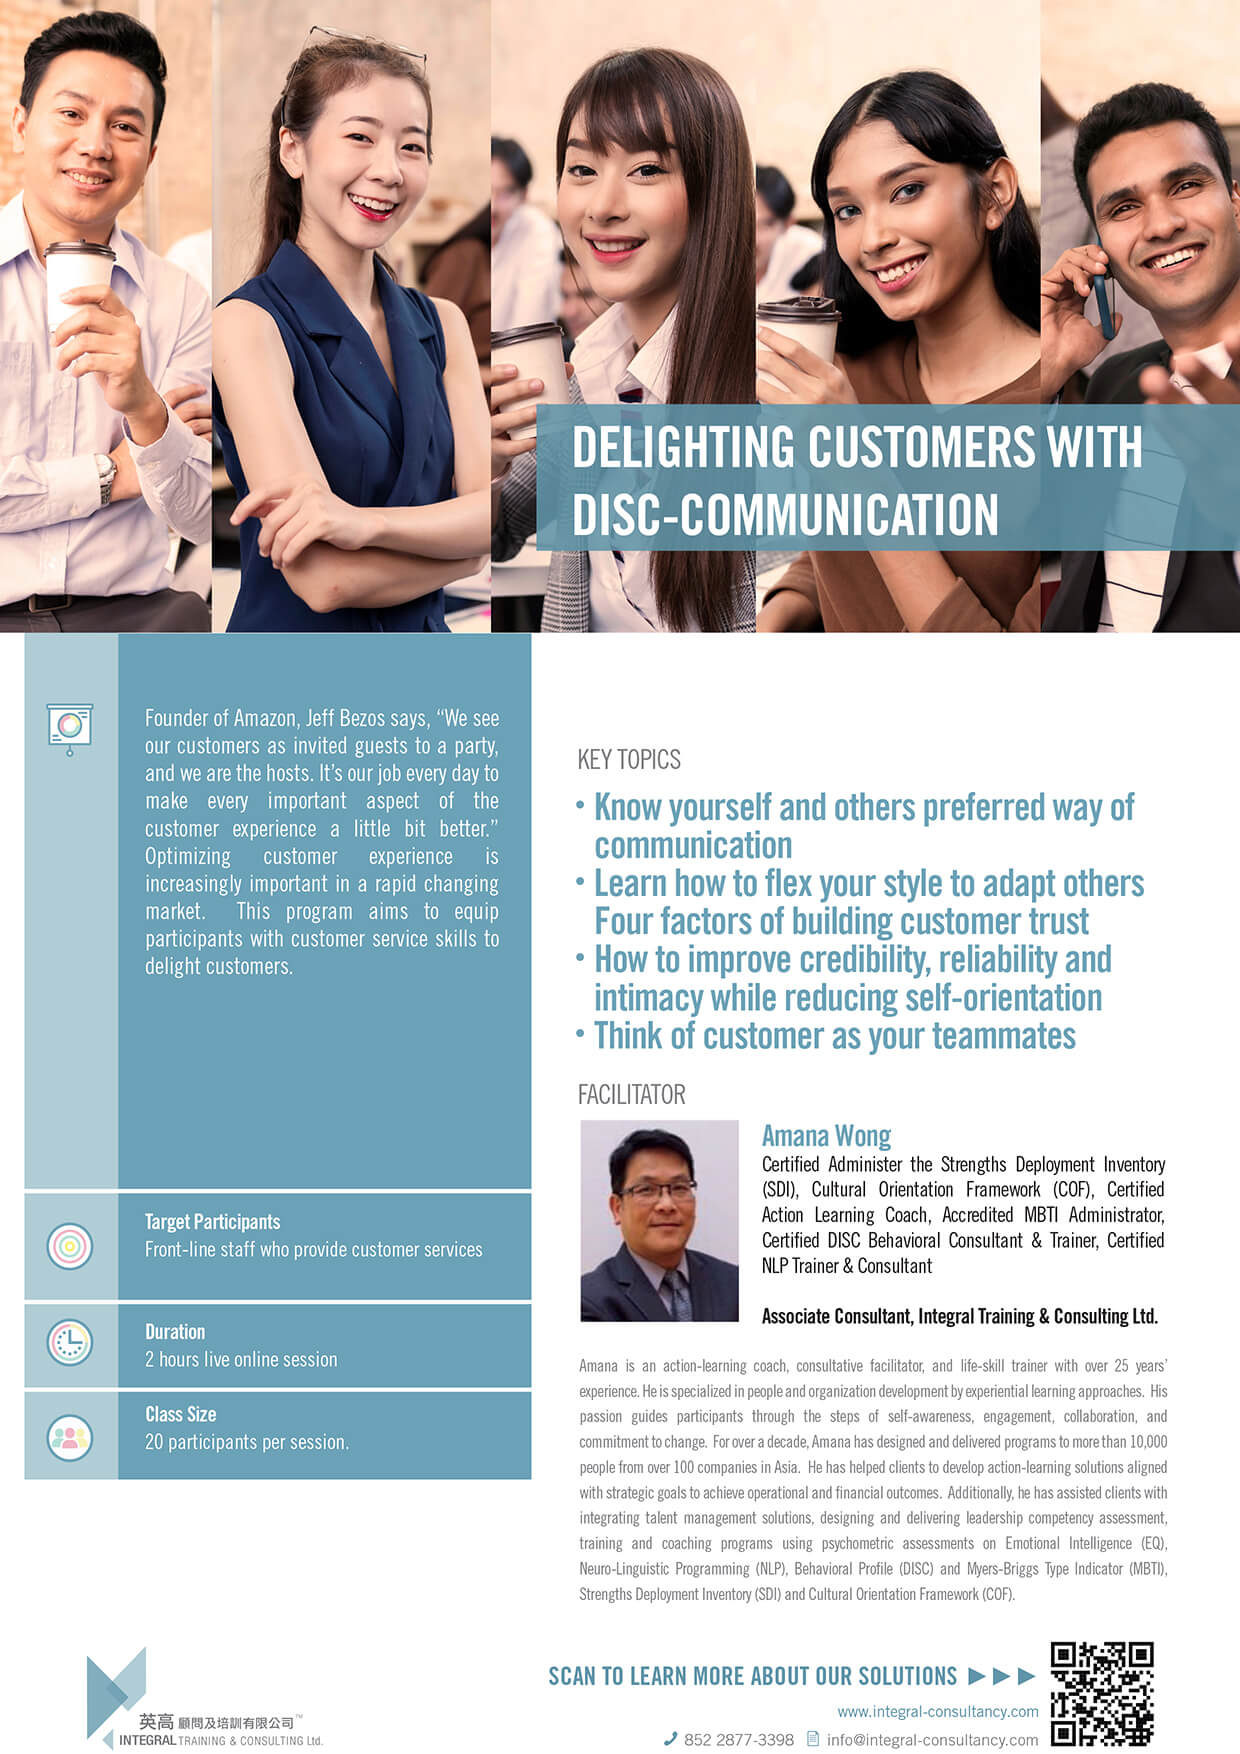 Delighting Customers with DISC Communication